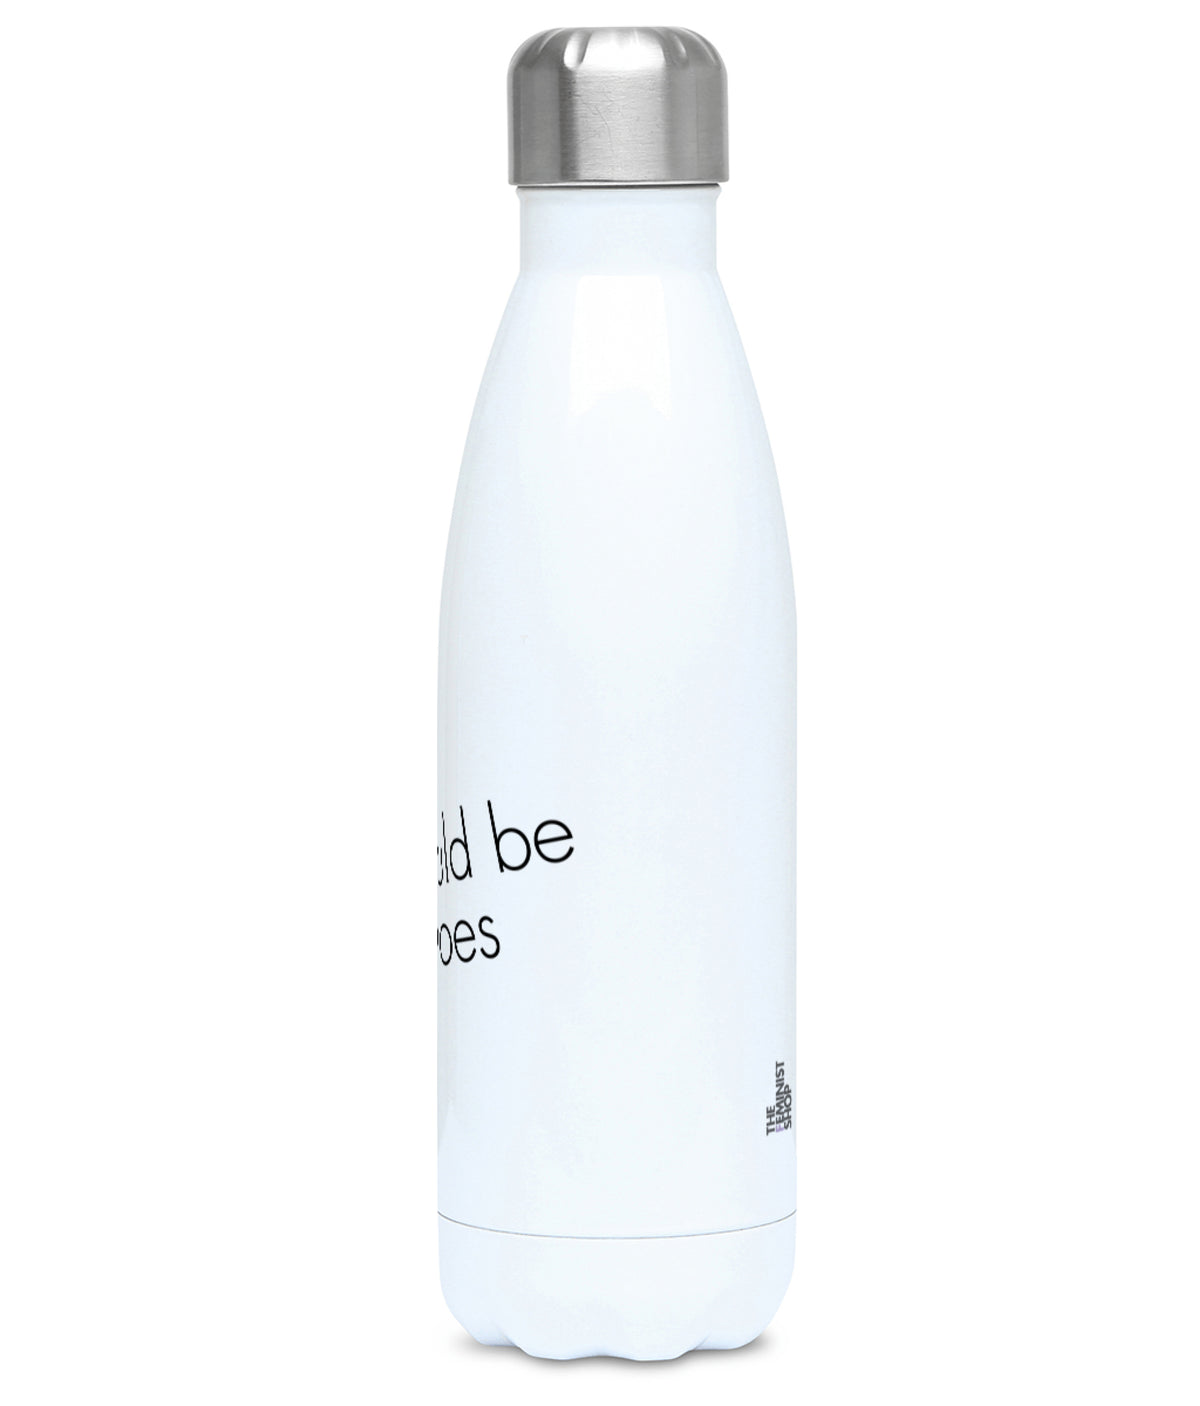 Feminist Water Bottle - We Could Be Sheroes - Right